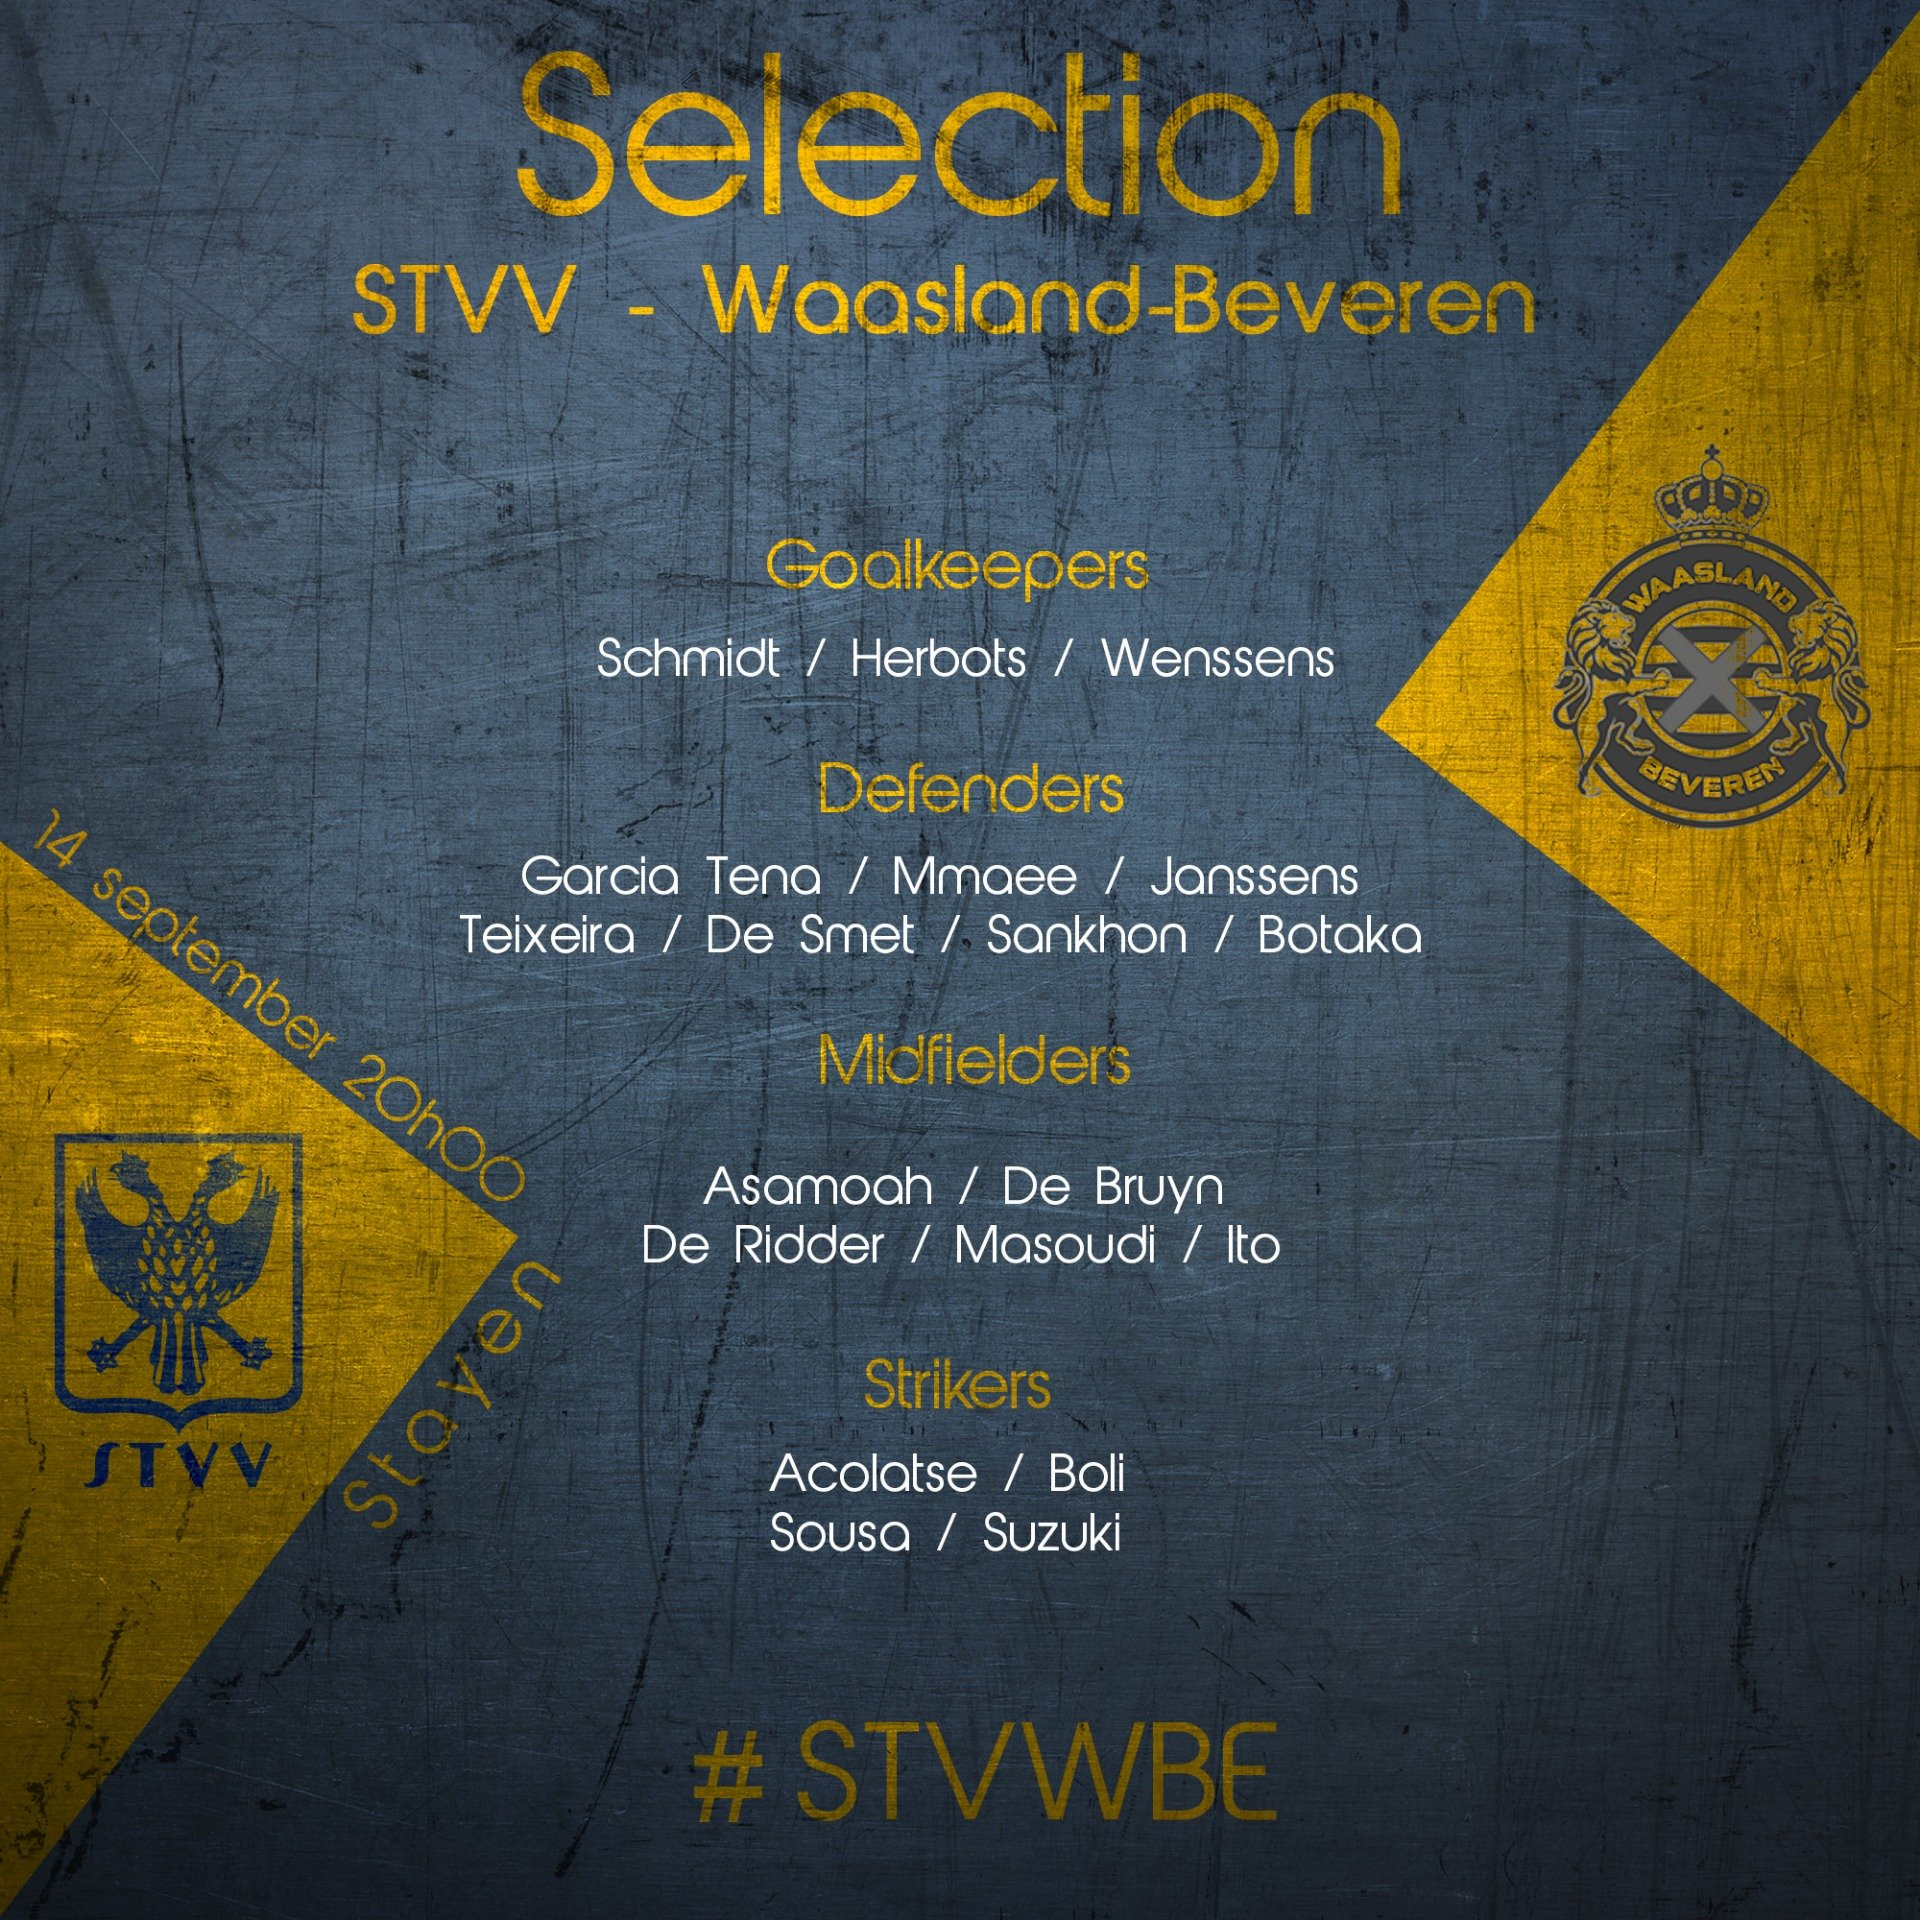 Selection News: STVV - Waasland Beveren 2019-2020